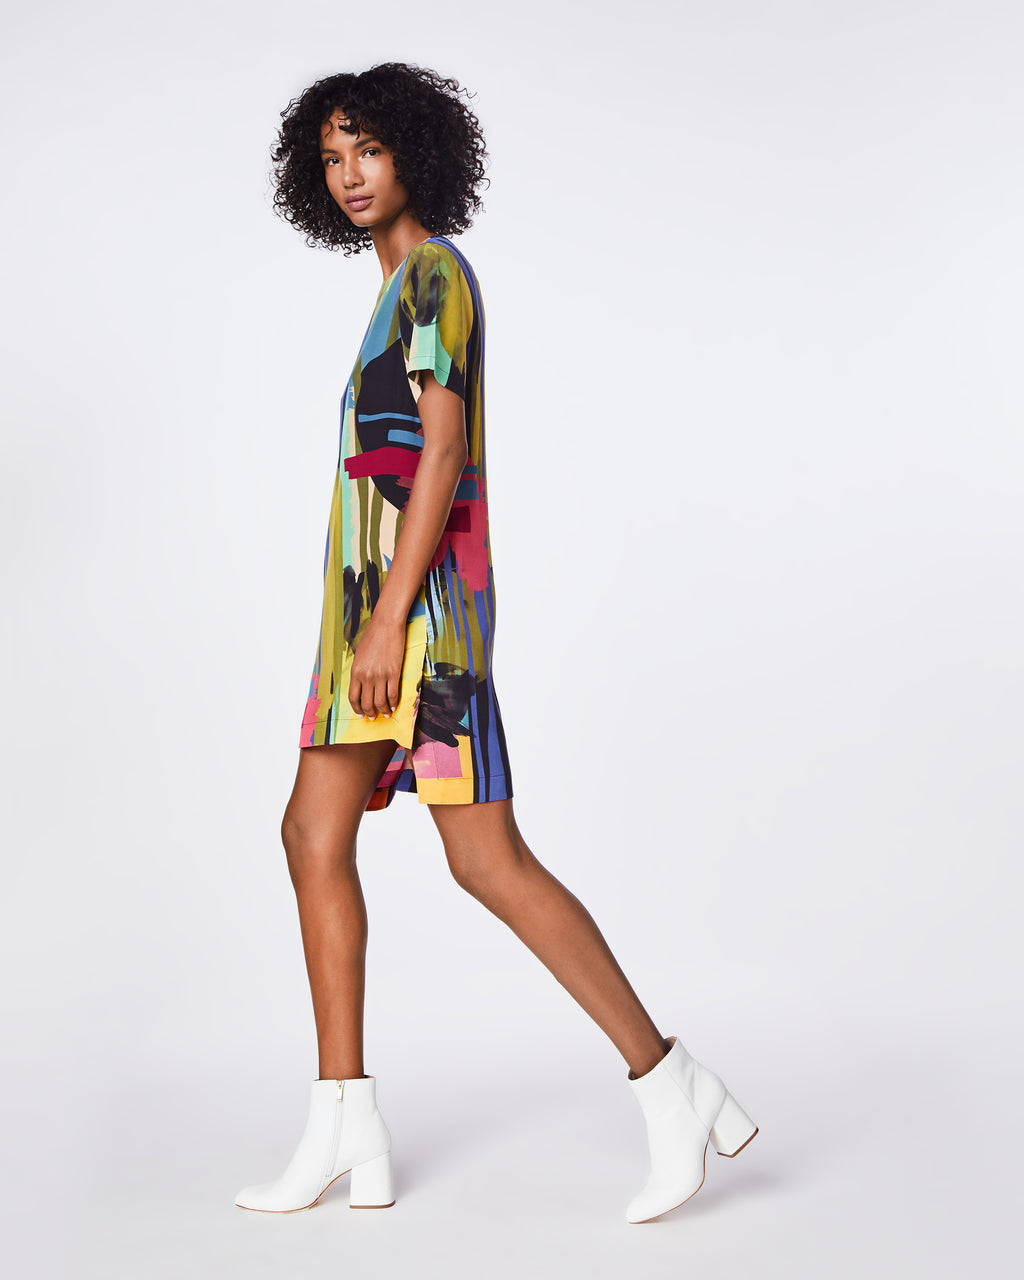 BO10161 - ABSTRACT PAINT SHIRT DRESS - dresses - short - The abstract paint print on this short-sleeve dress adds a touch of fun to a classic shirt dress style. Fully lined, this dress is a great go-to piece